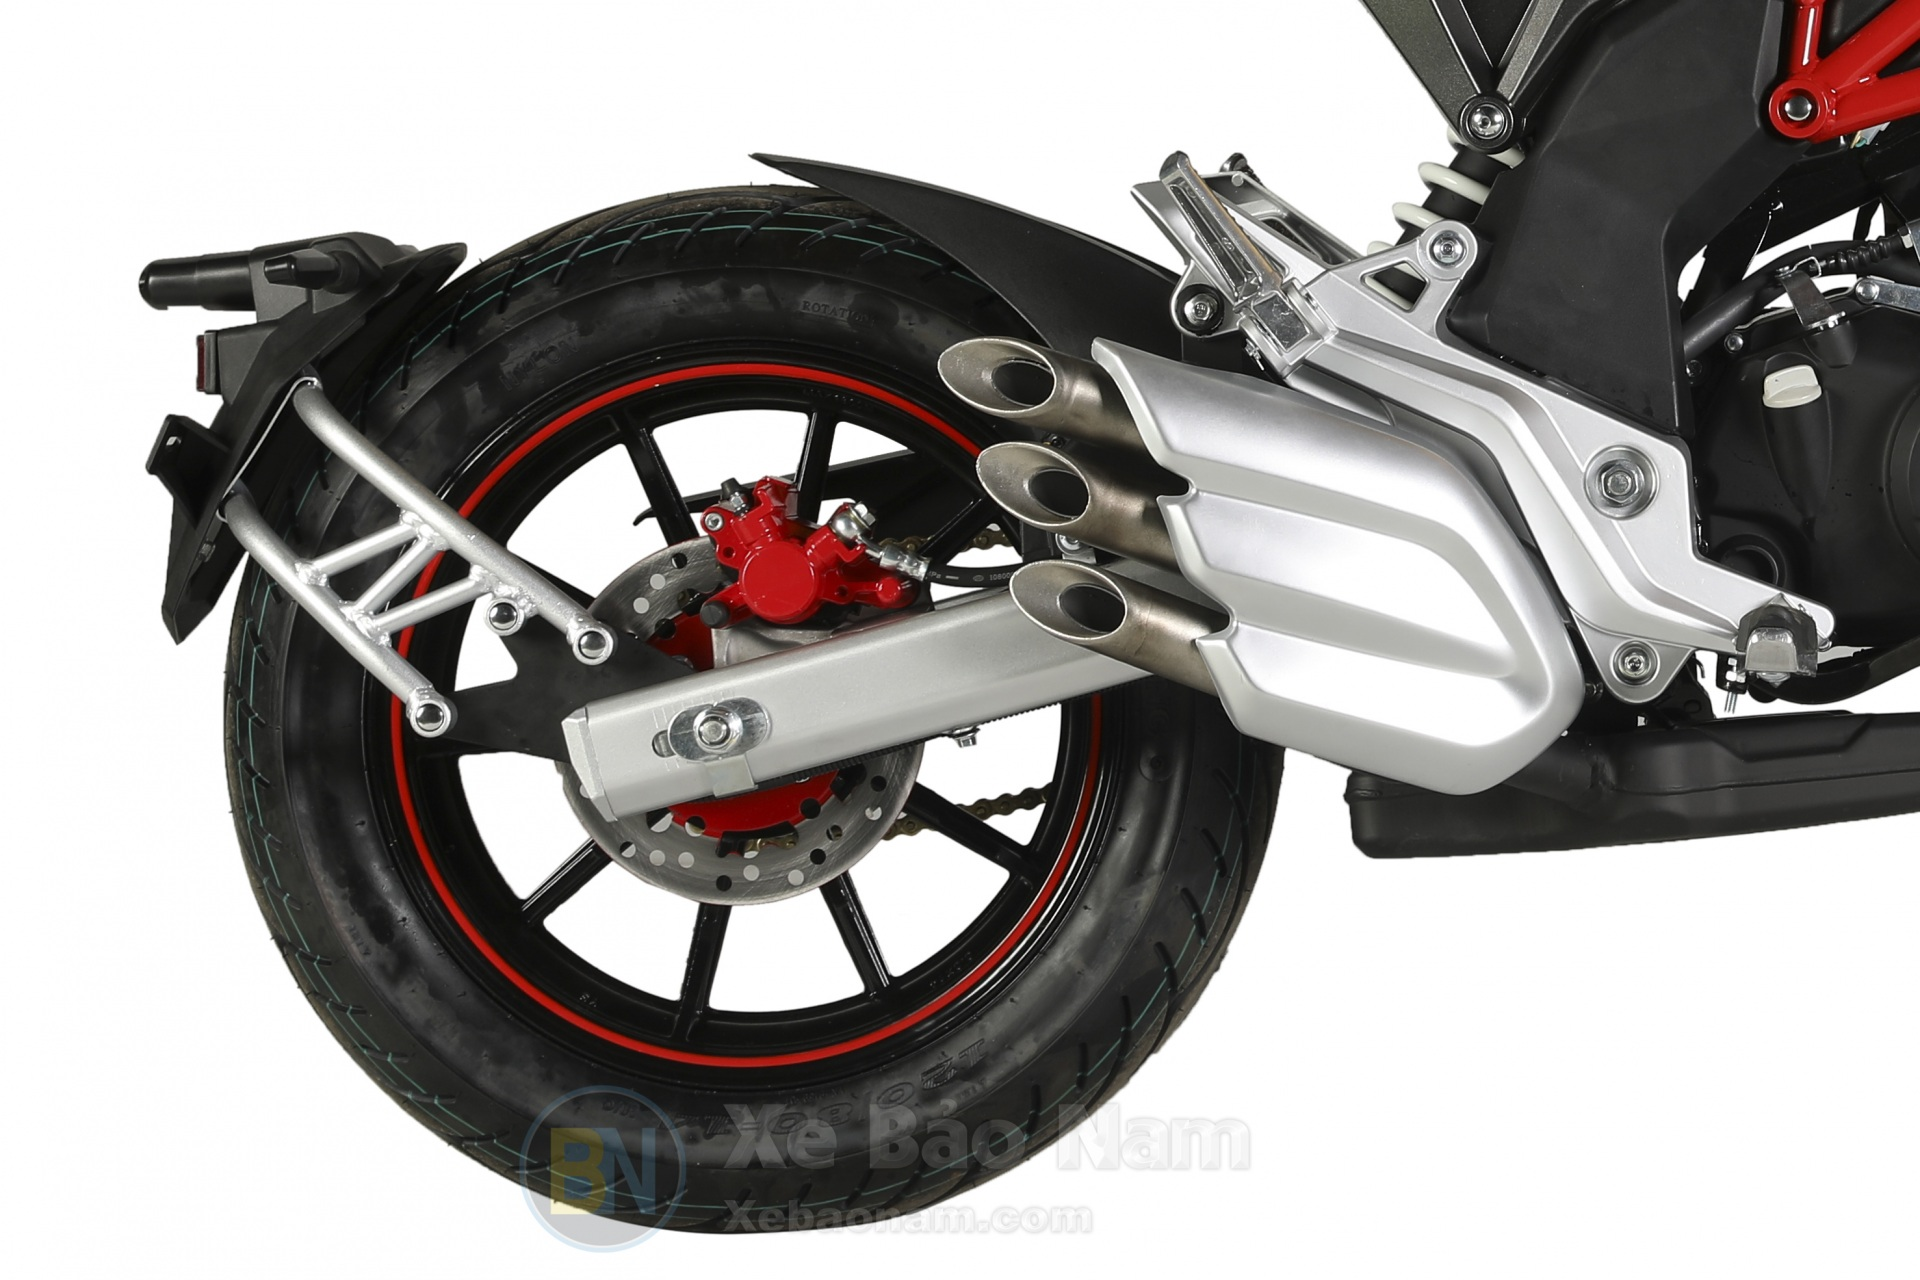 xe-may-mv-agusta-mini-110-new-xebaonam-5